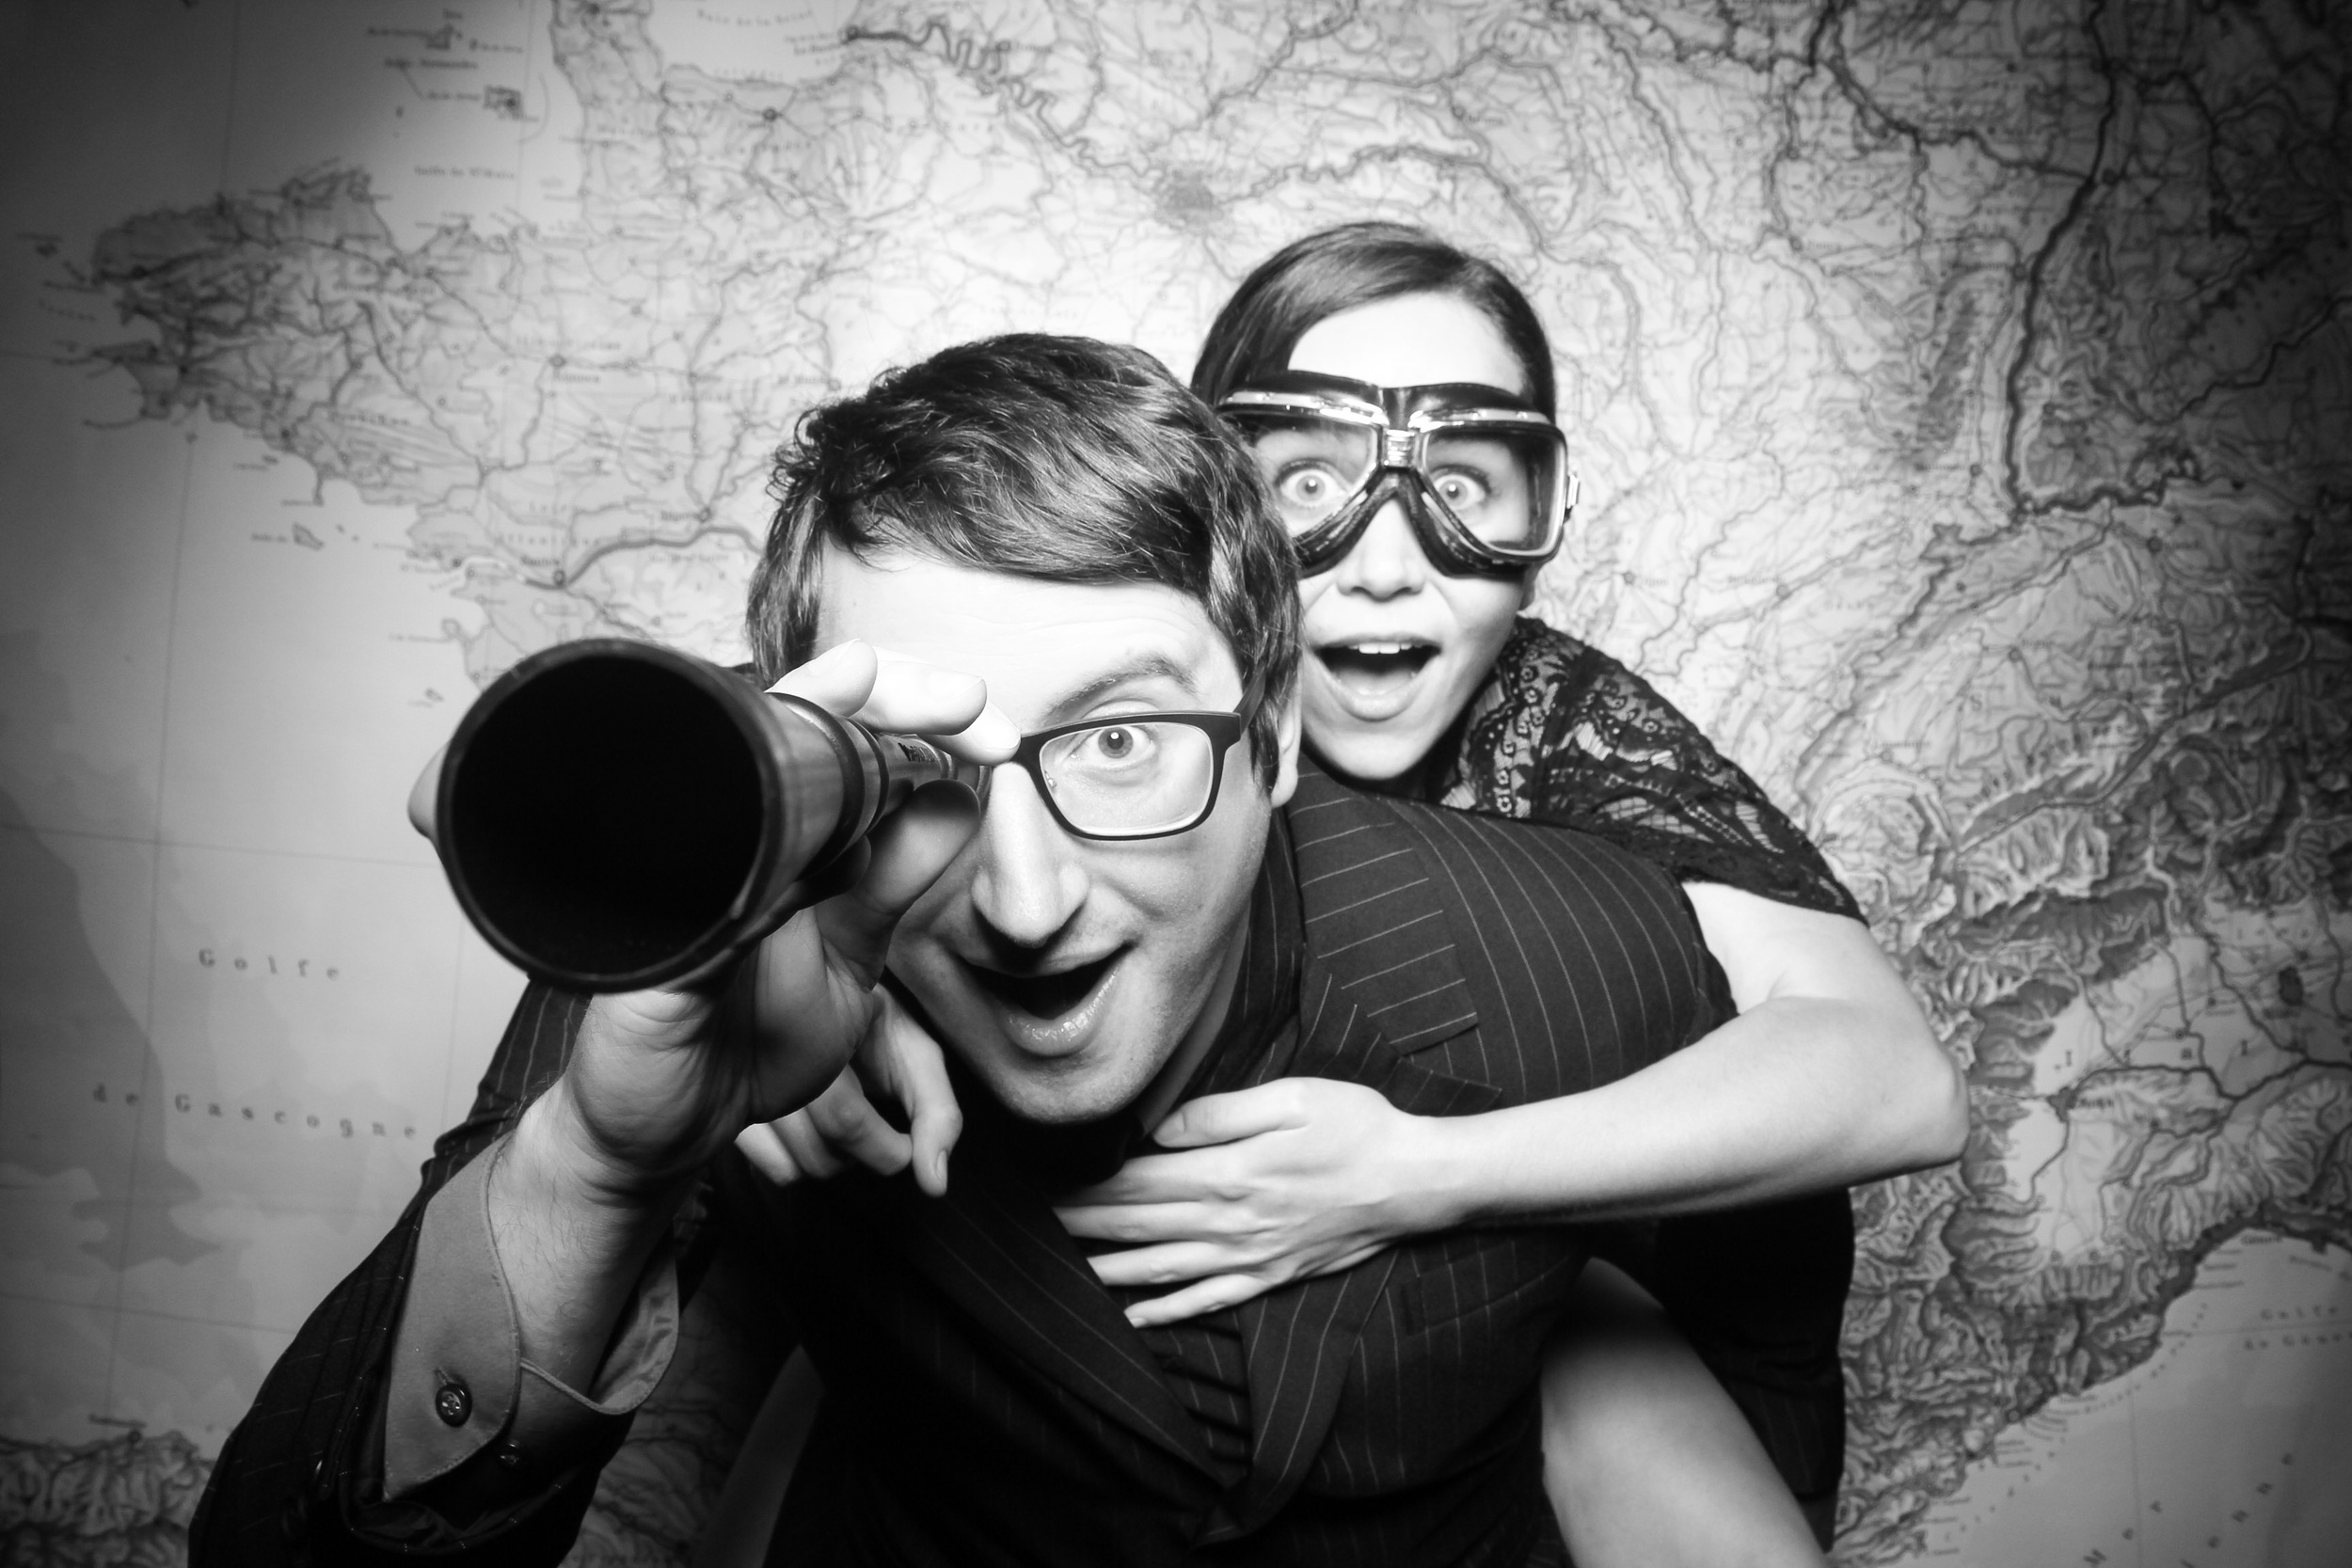 A travel themed wedding photo booth at a Chicago Museum! Love the telescope and goggle props!